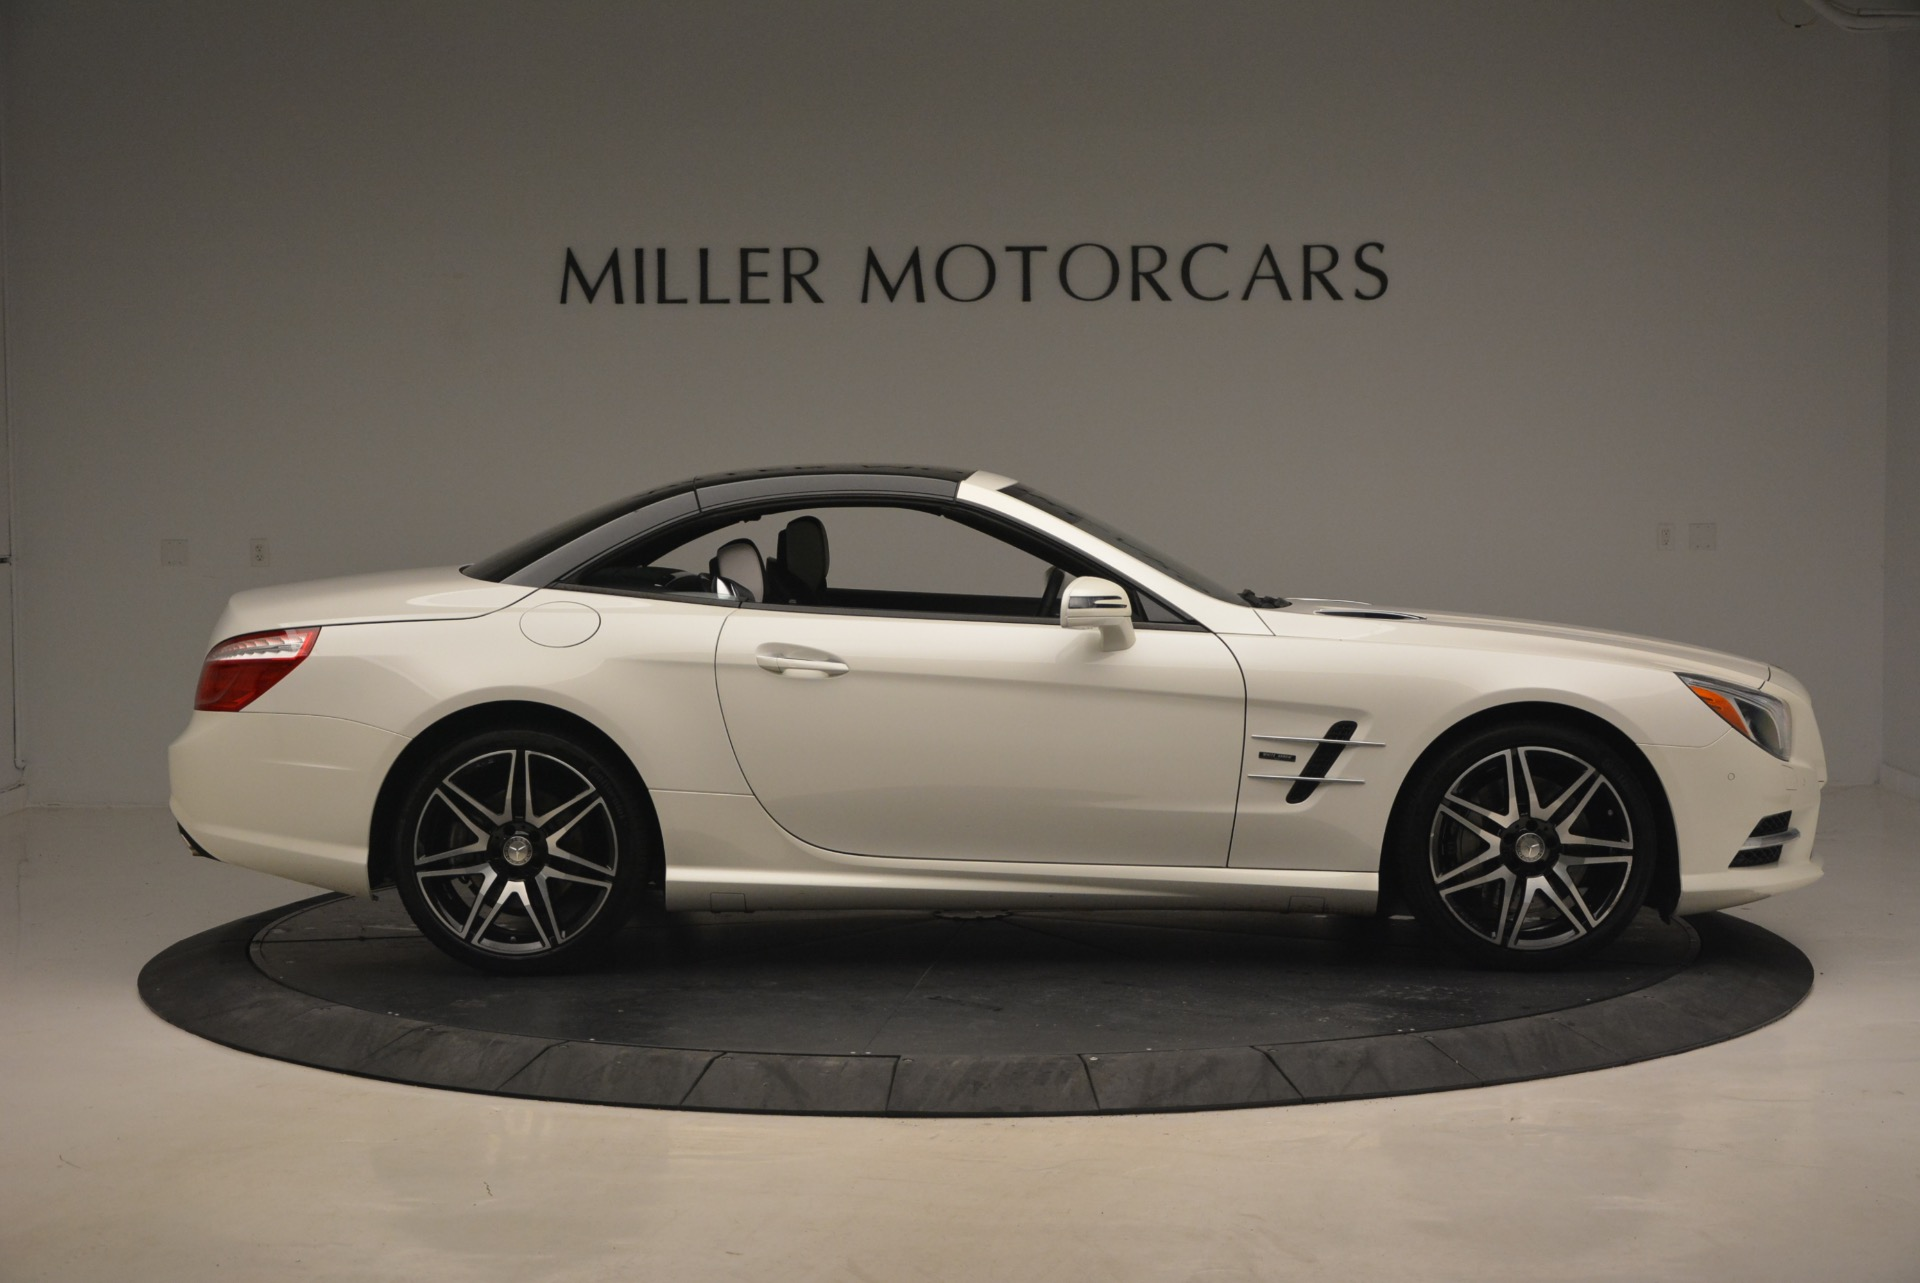 Used 2015 Mercedes Benz SL-Class SL 550 For Sale In Westport, CT 1261_p23